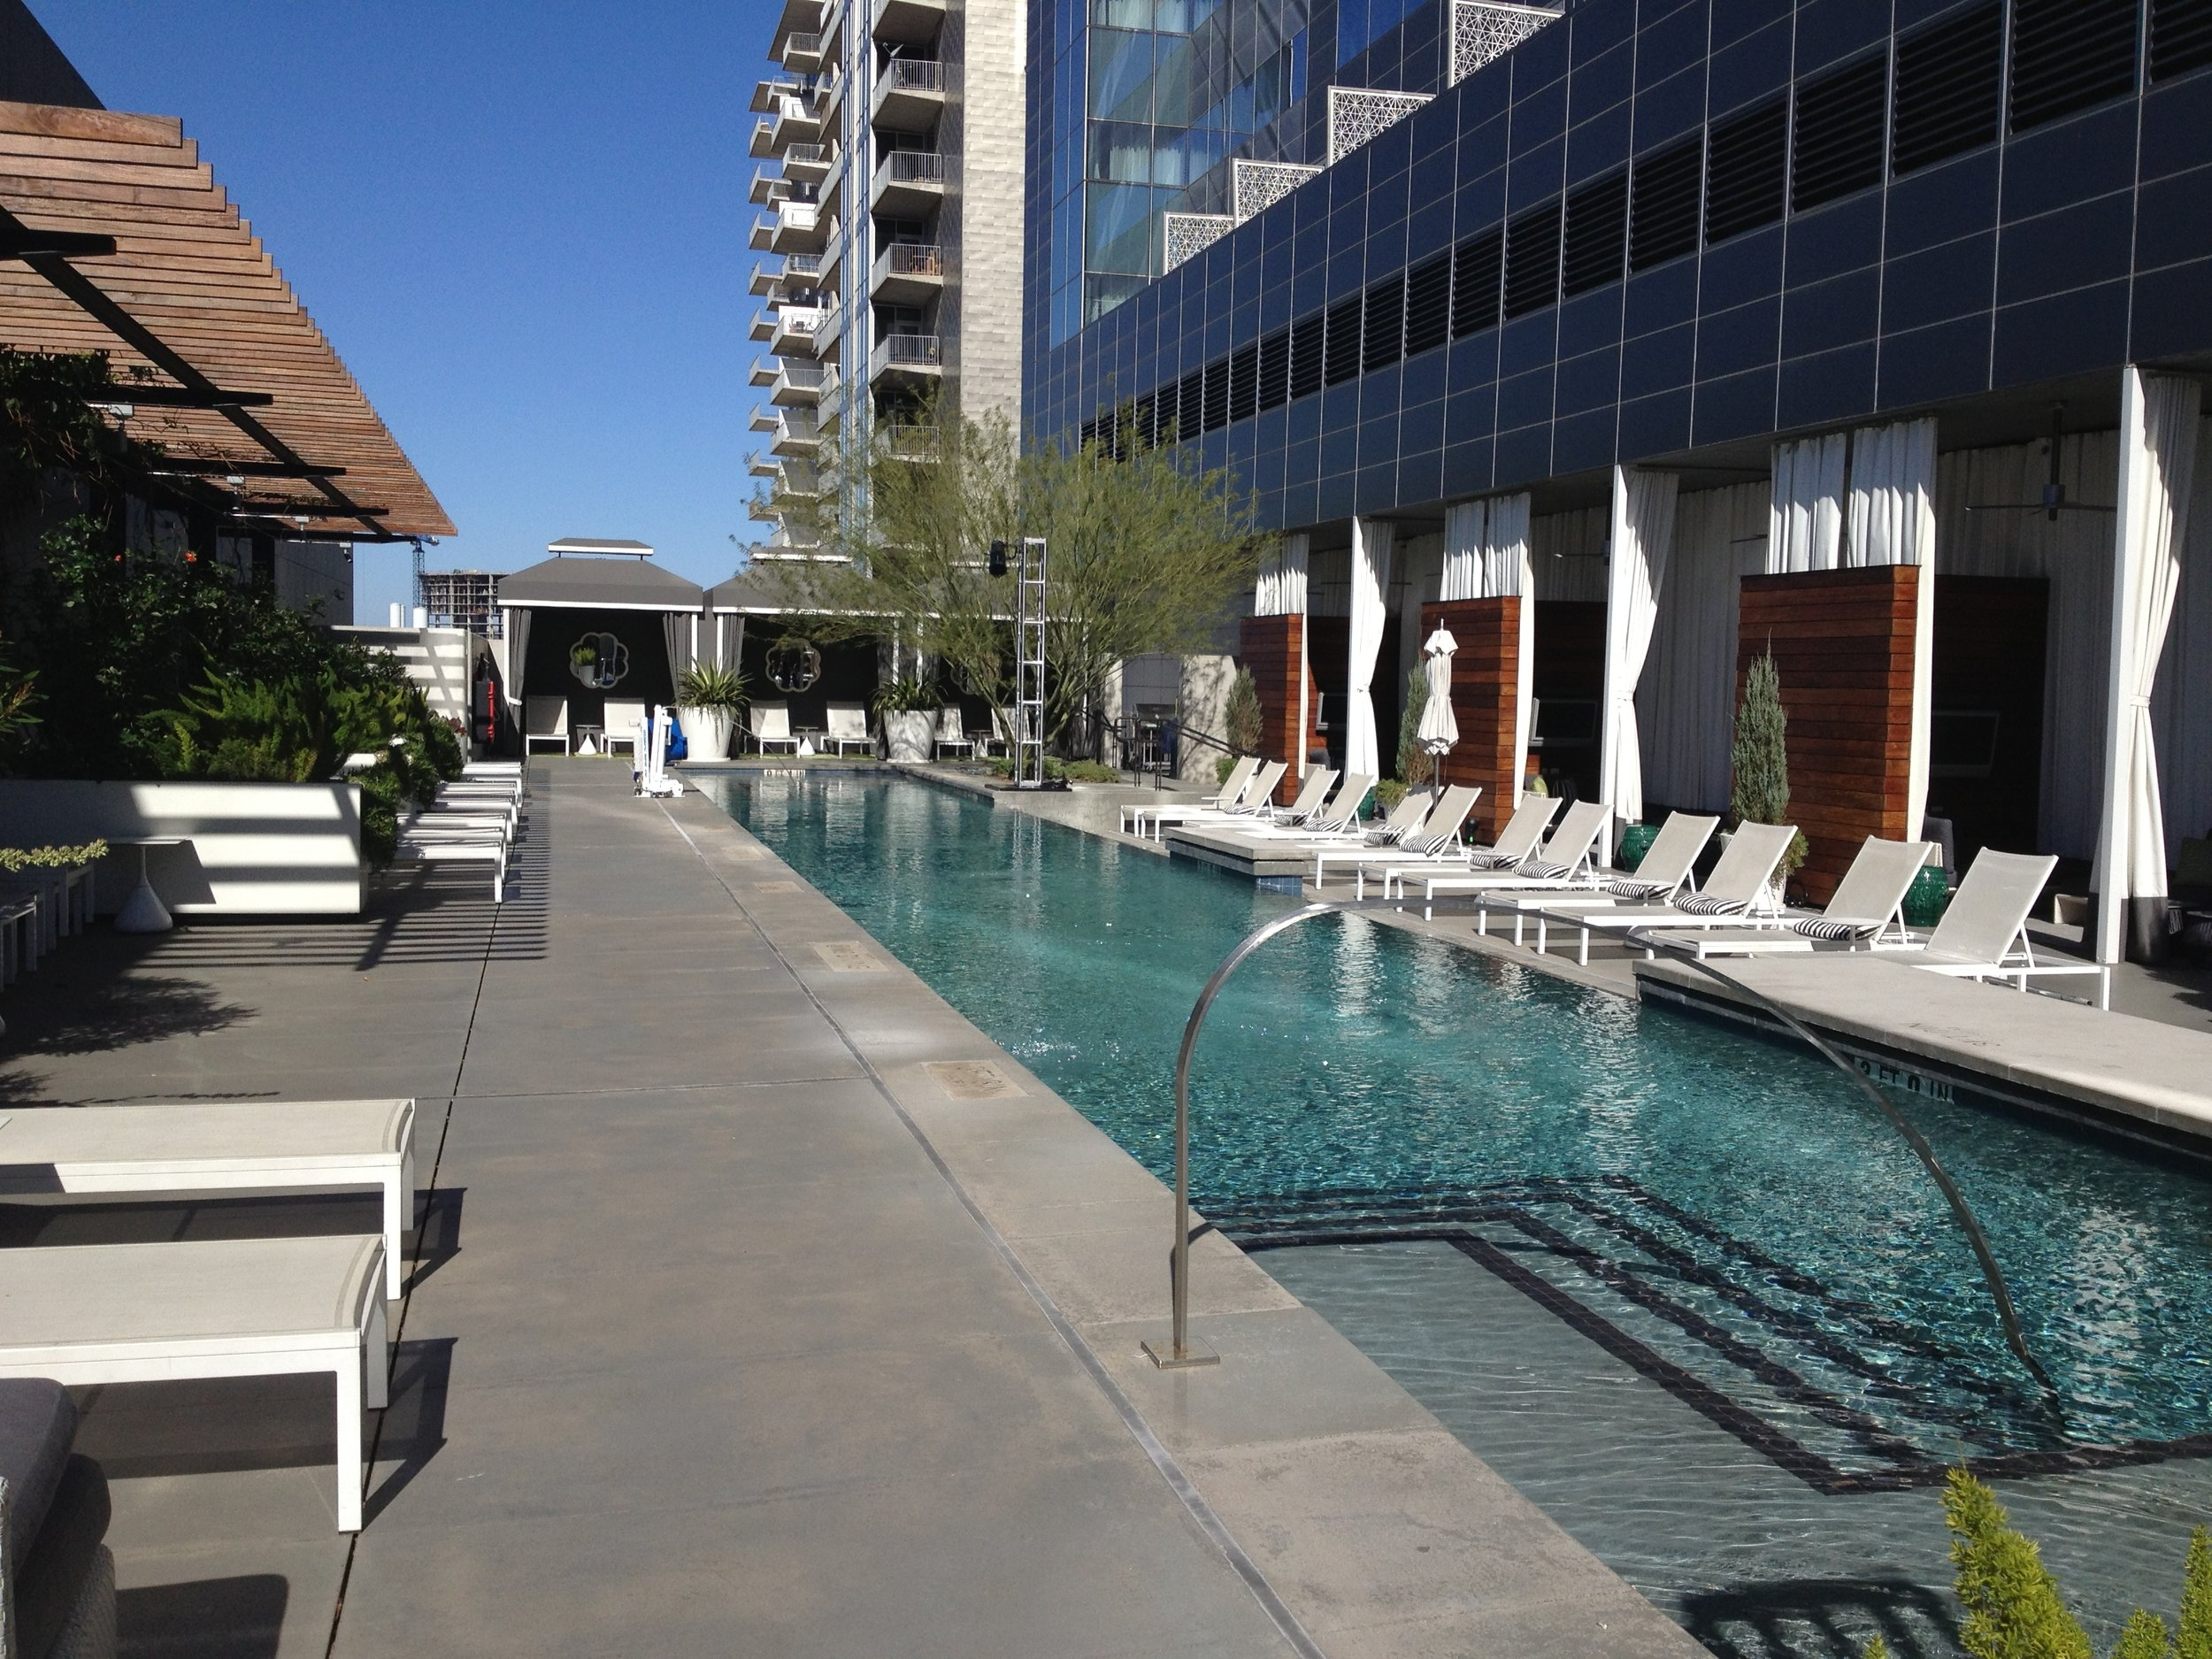 The luxe poolside setting provided an outdoor bar, swimming, and private cabanas.